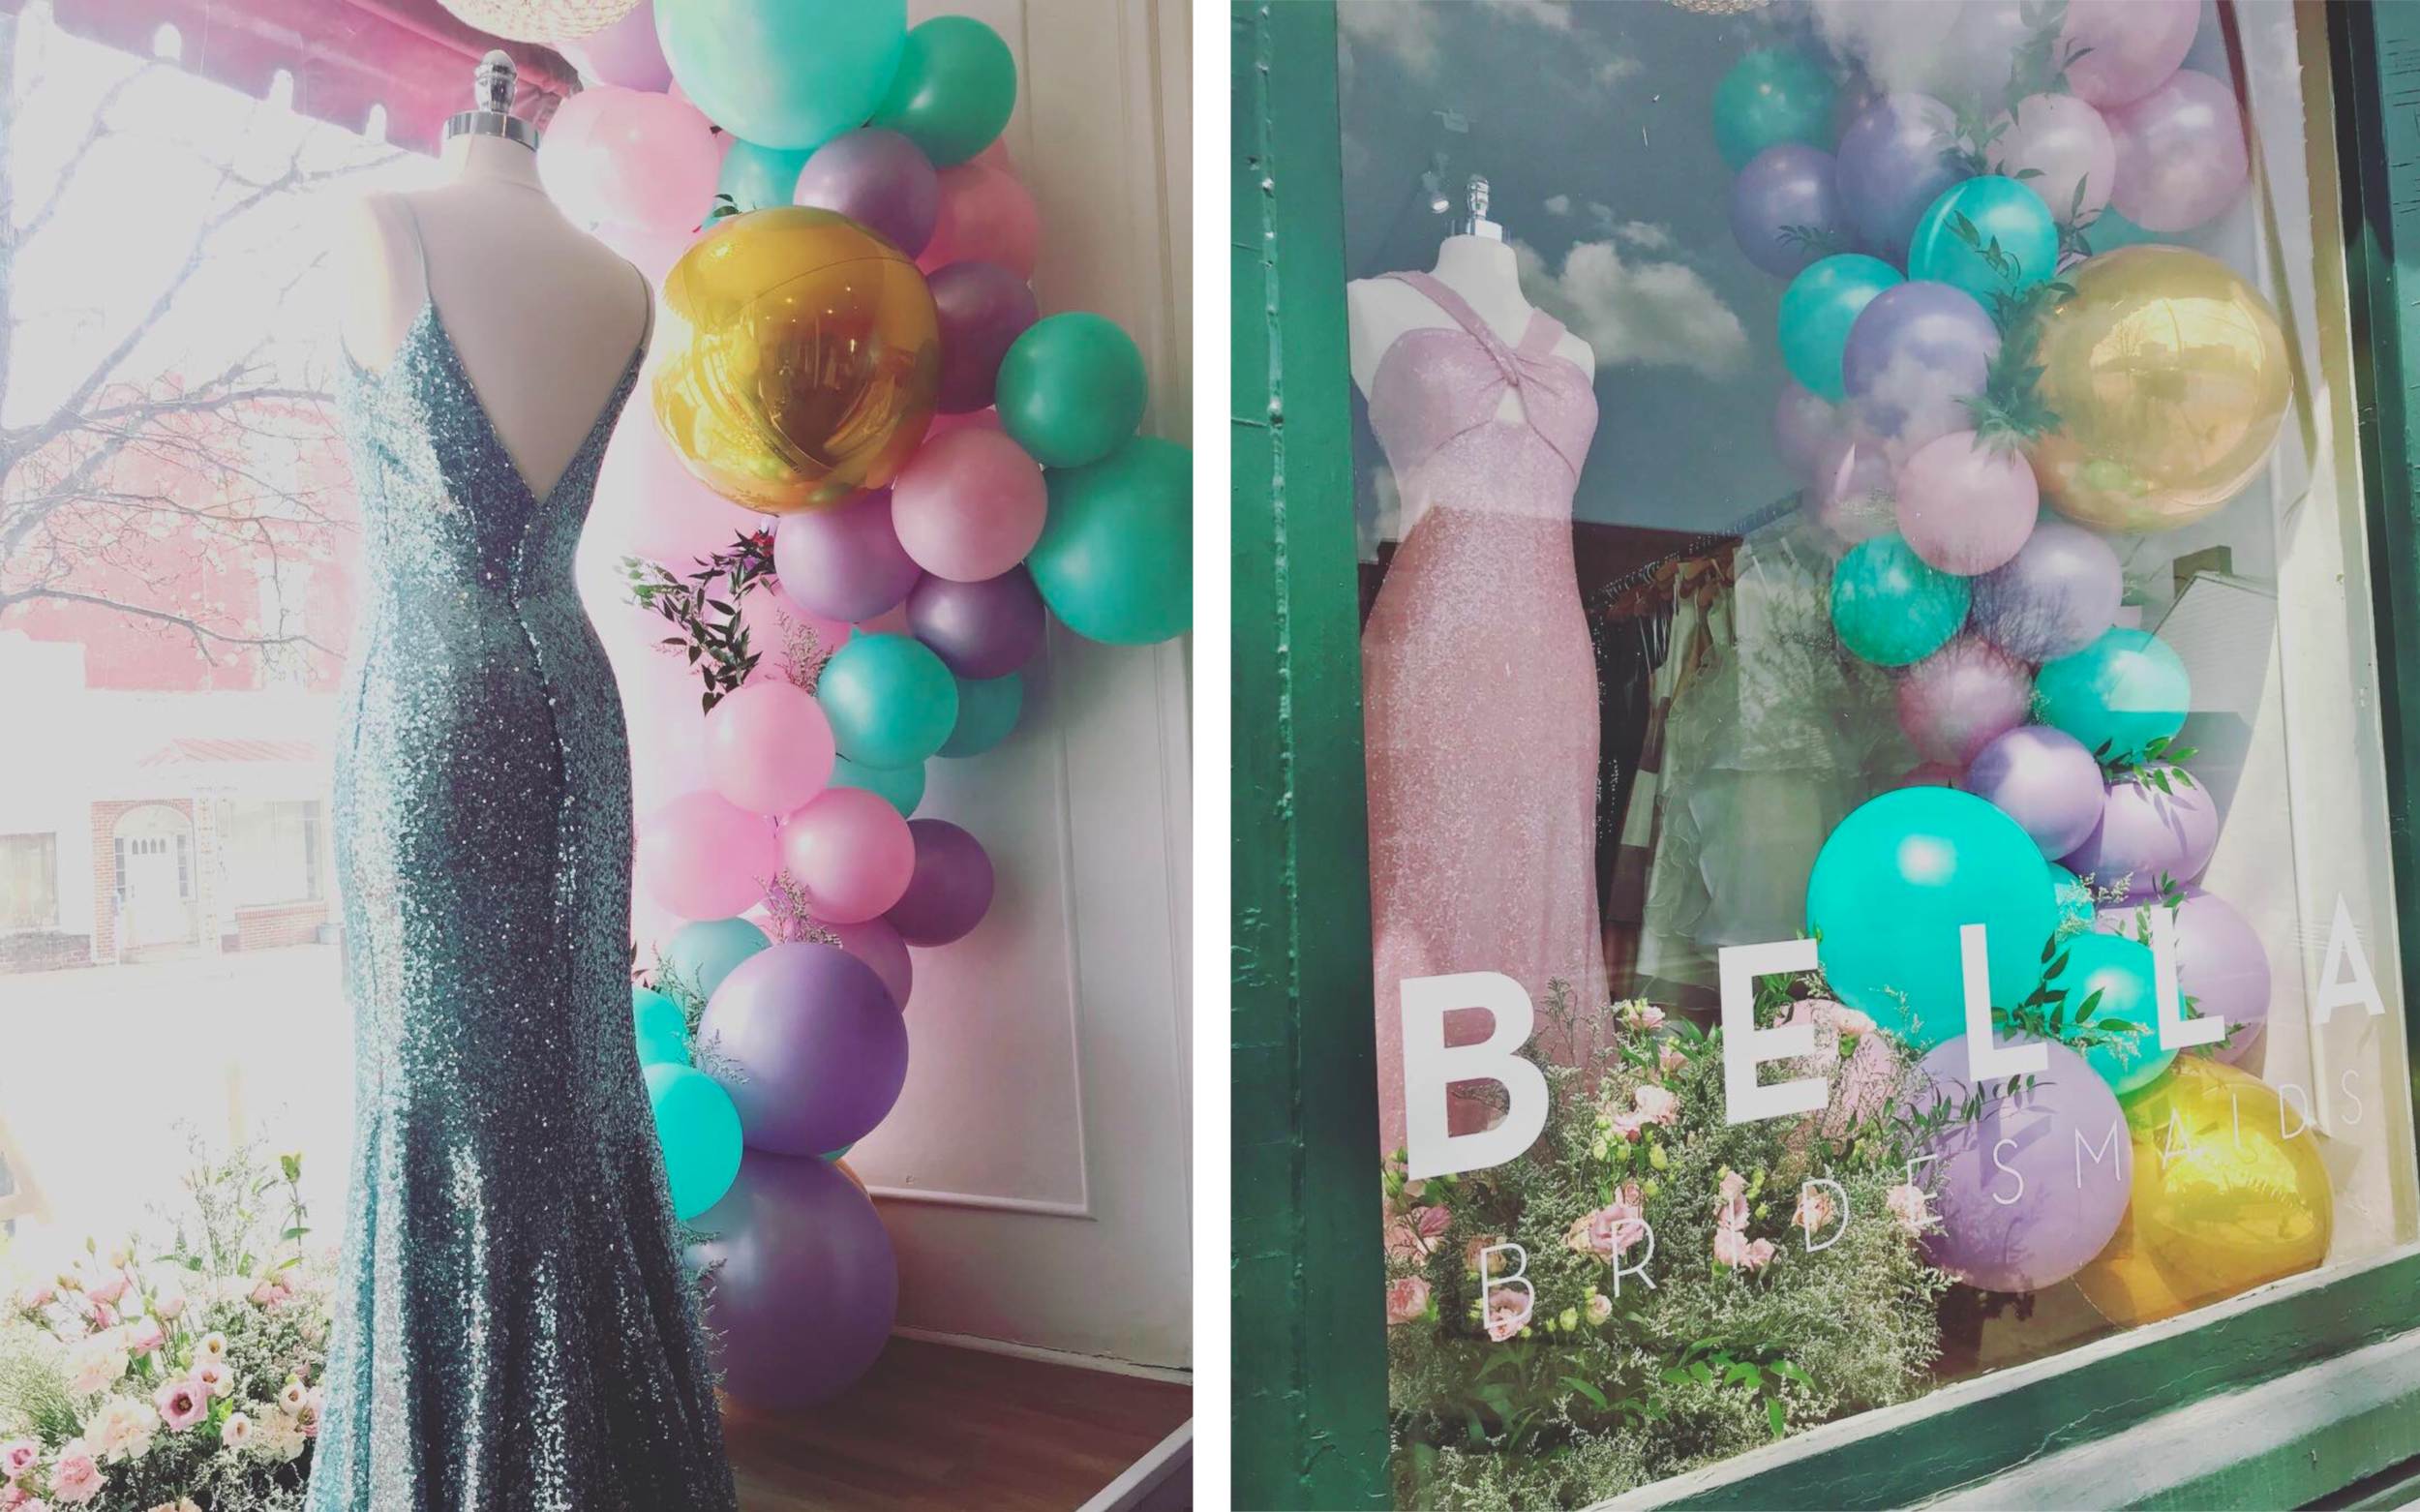 "BELLA BRIDESMAIDS - ""Being able to work with Kate was amazing! She really listen to my thoughts and opinions and brought the windows to life! Over the couple weeks the displays were in the windows, I had TONS of compliments and people stopping to look. I can't wait to do the next display with her!"" - ANNA"